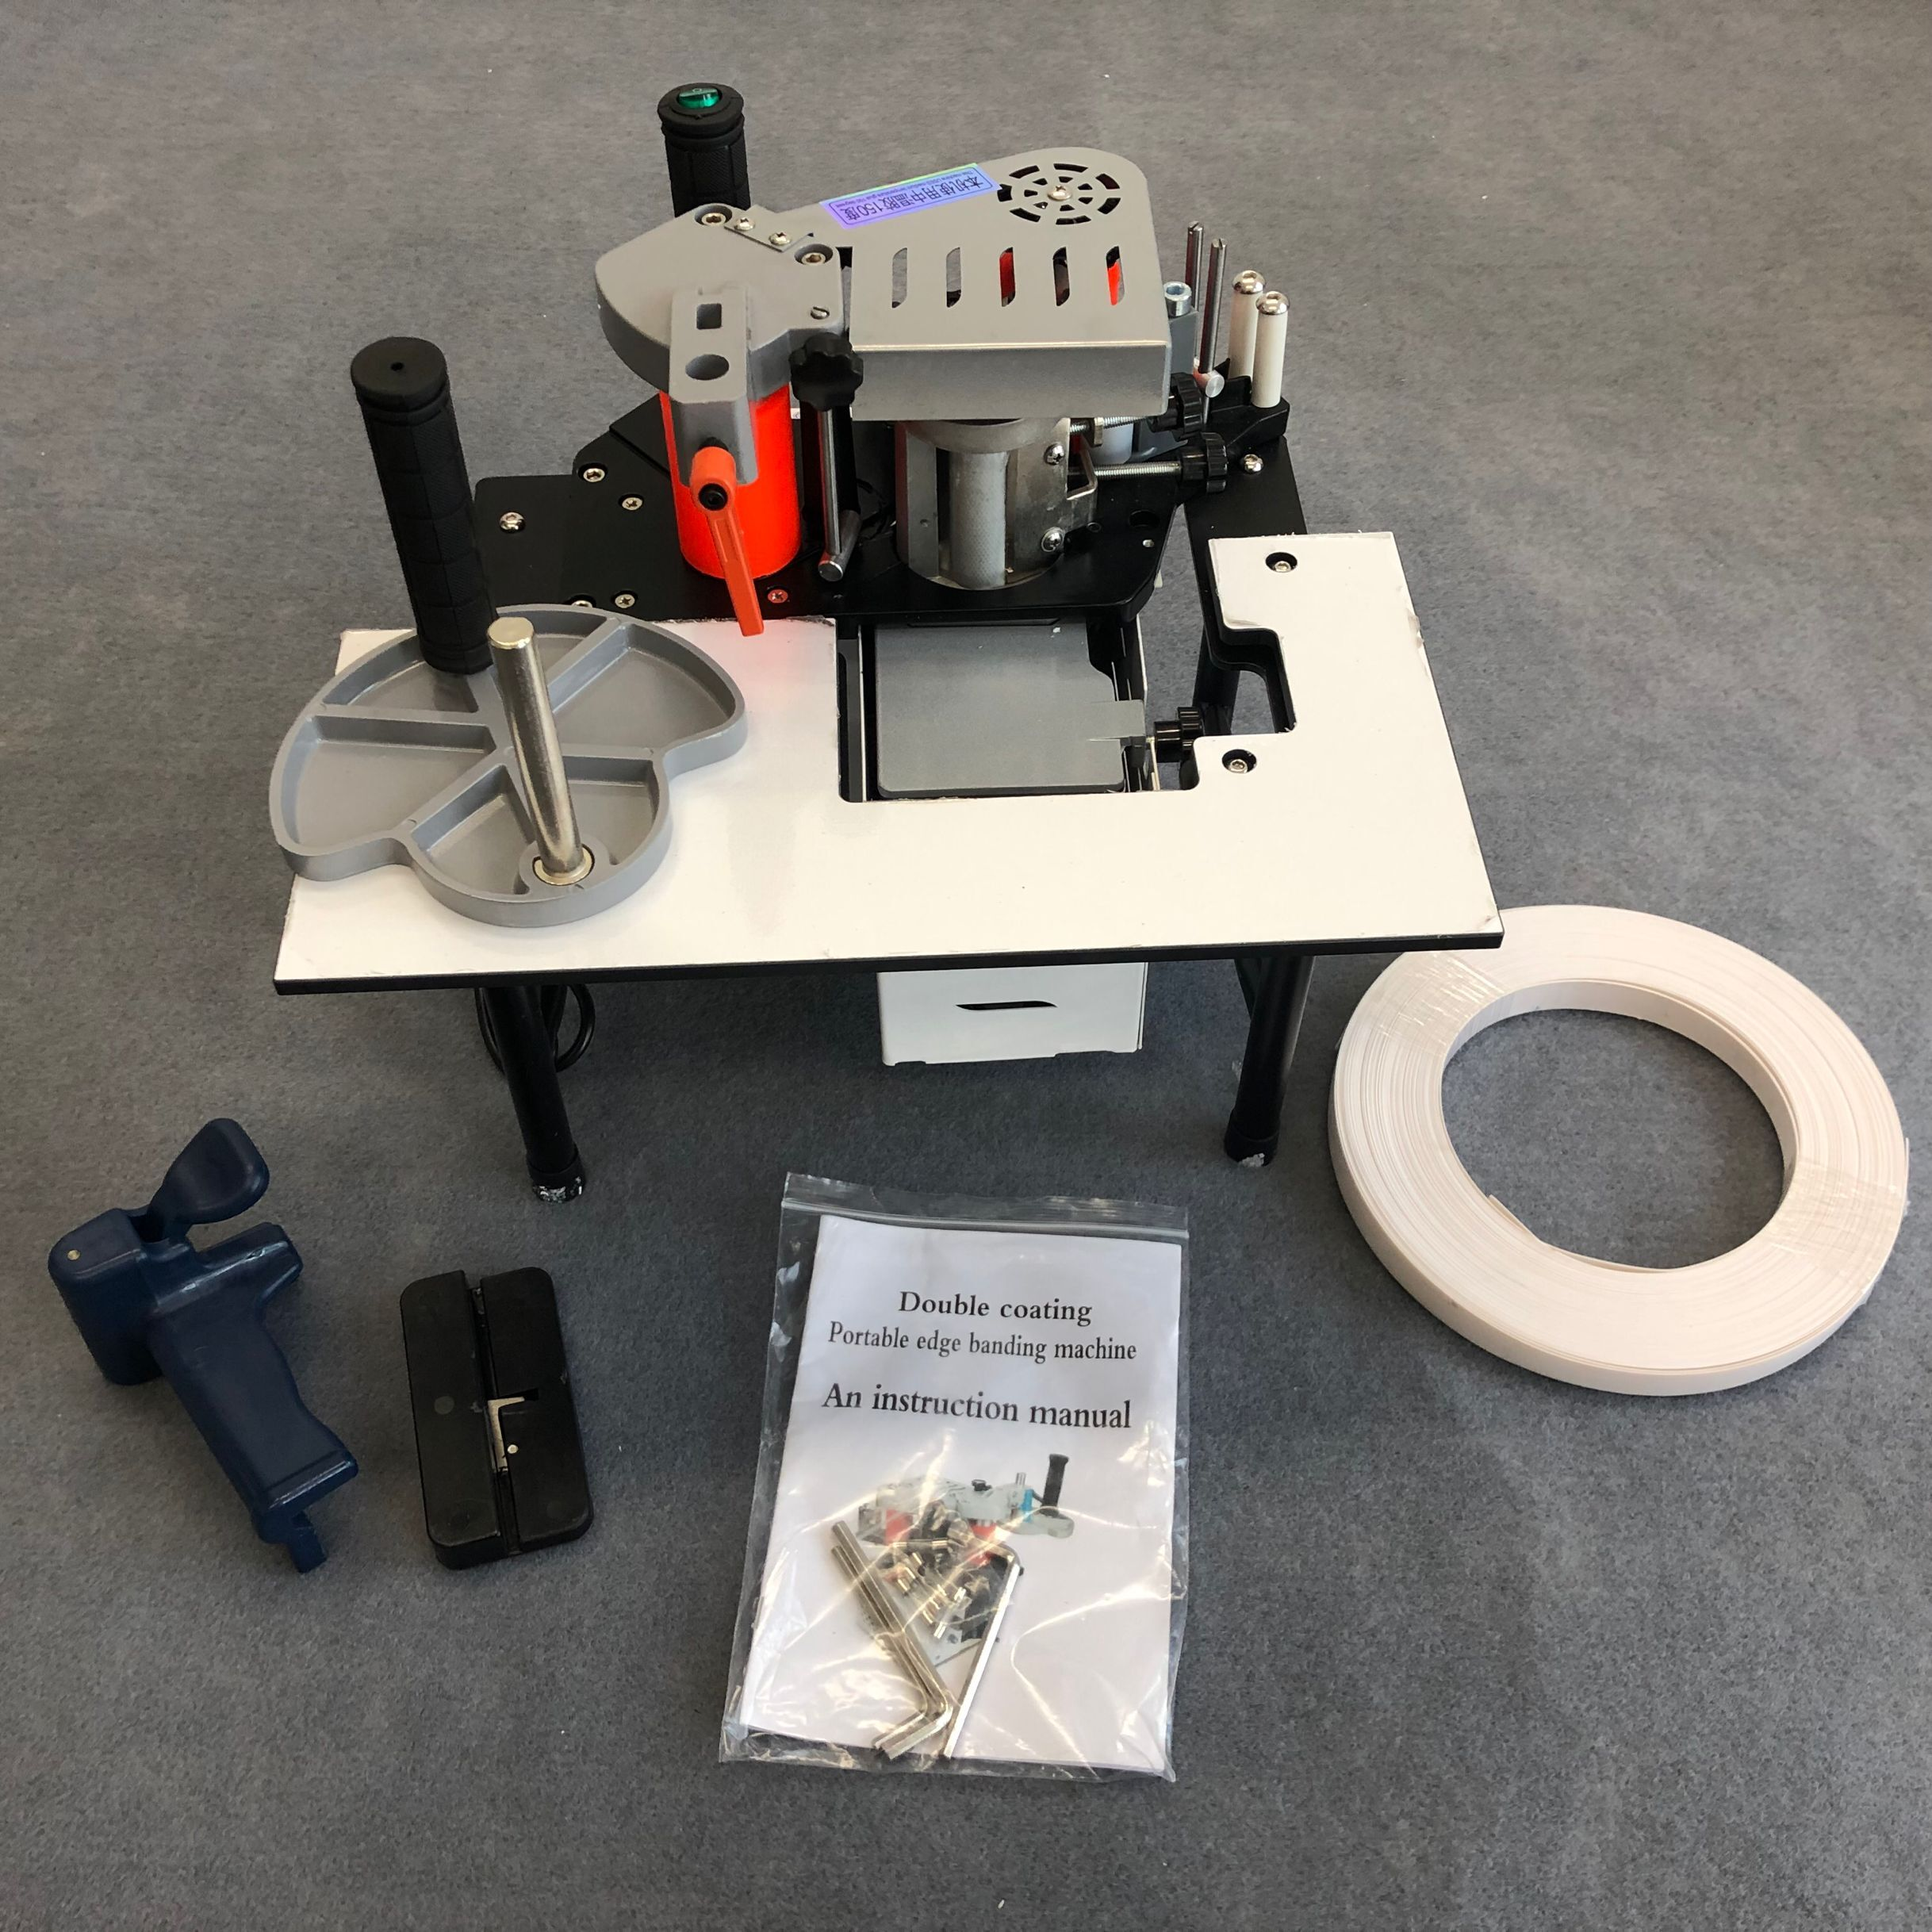 RU Delivery Woodworking Banding Machine Double Side Gluing Portable Edge Bander Woodworking Edge Banding Machine 220V 1200W